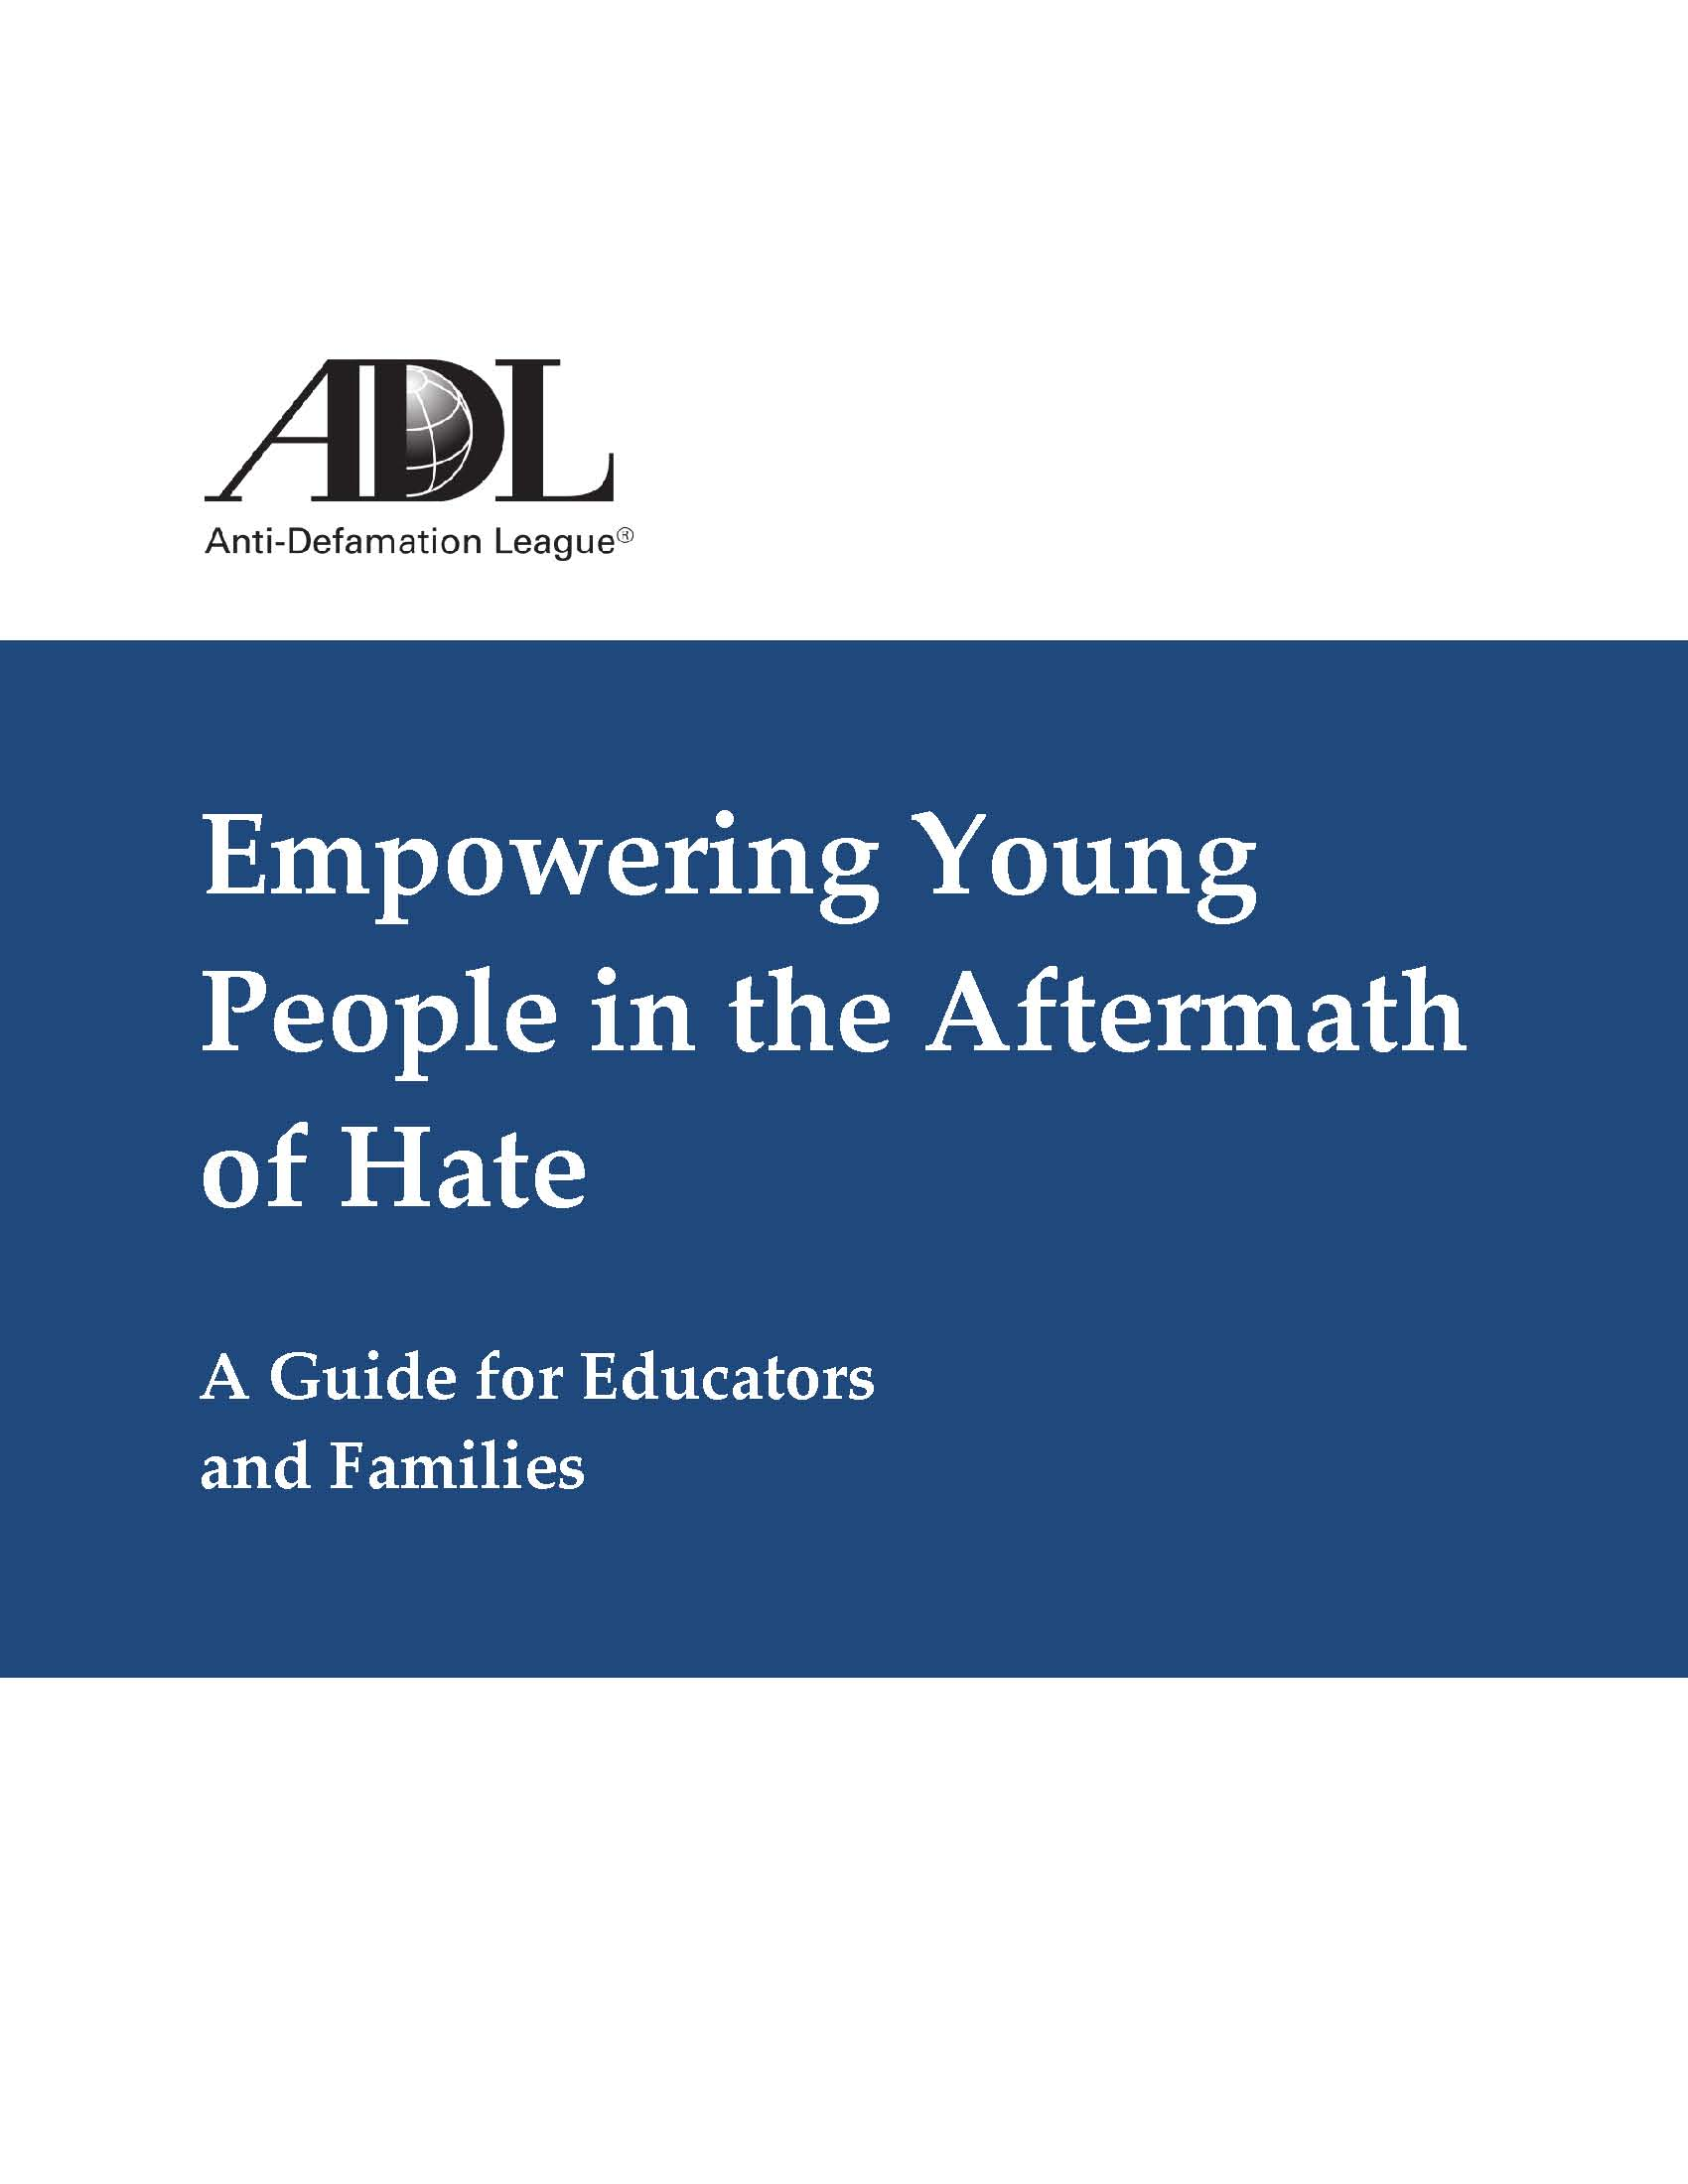 Empowering Young People in the Aftermath of Hate